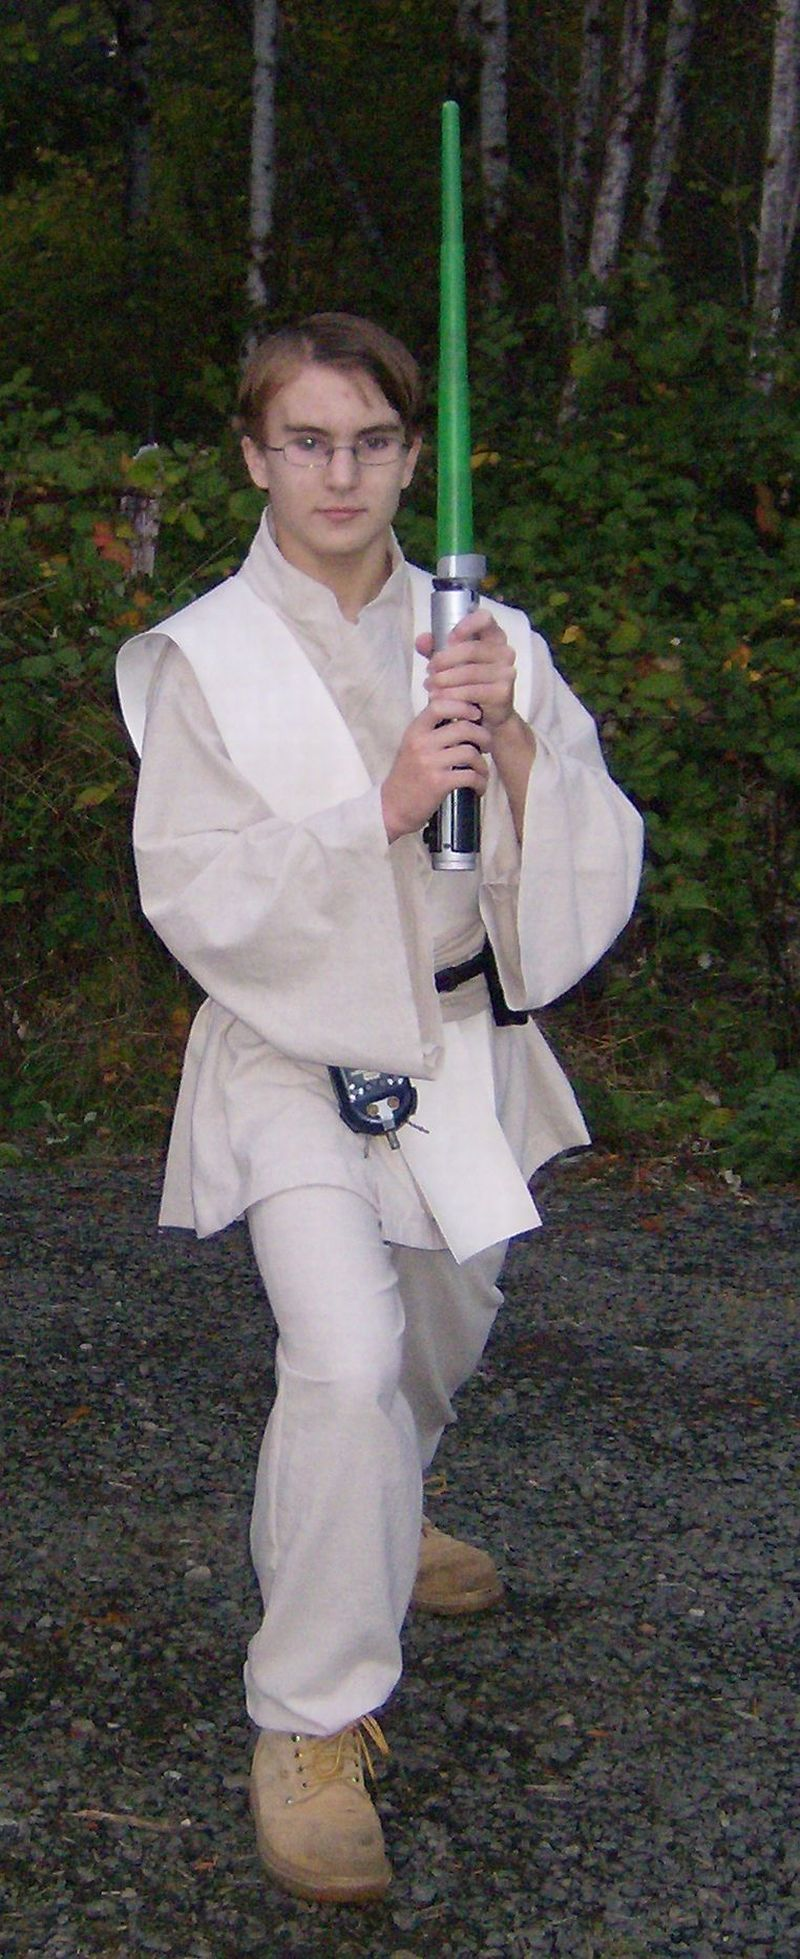 A young jedi